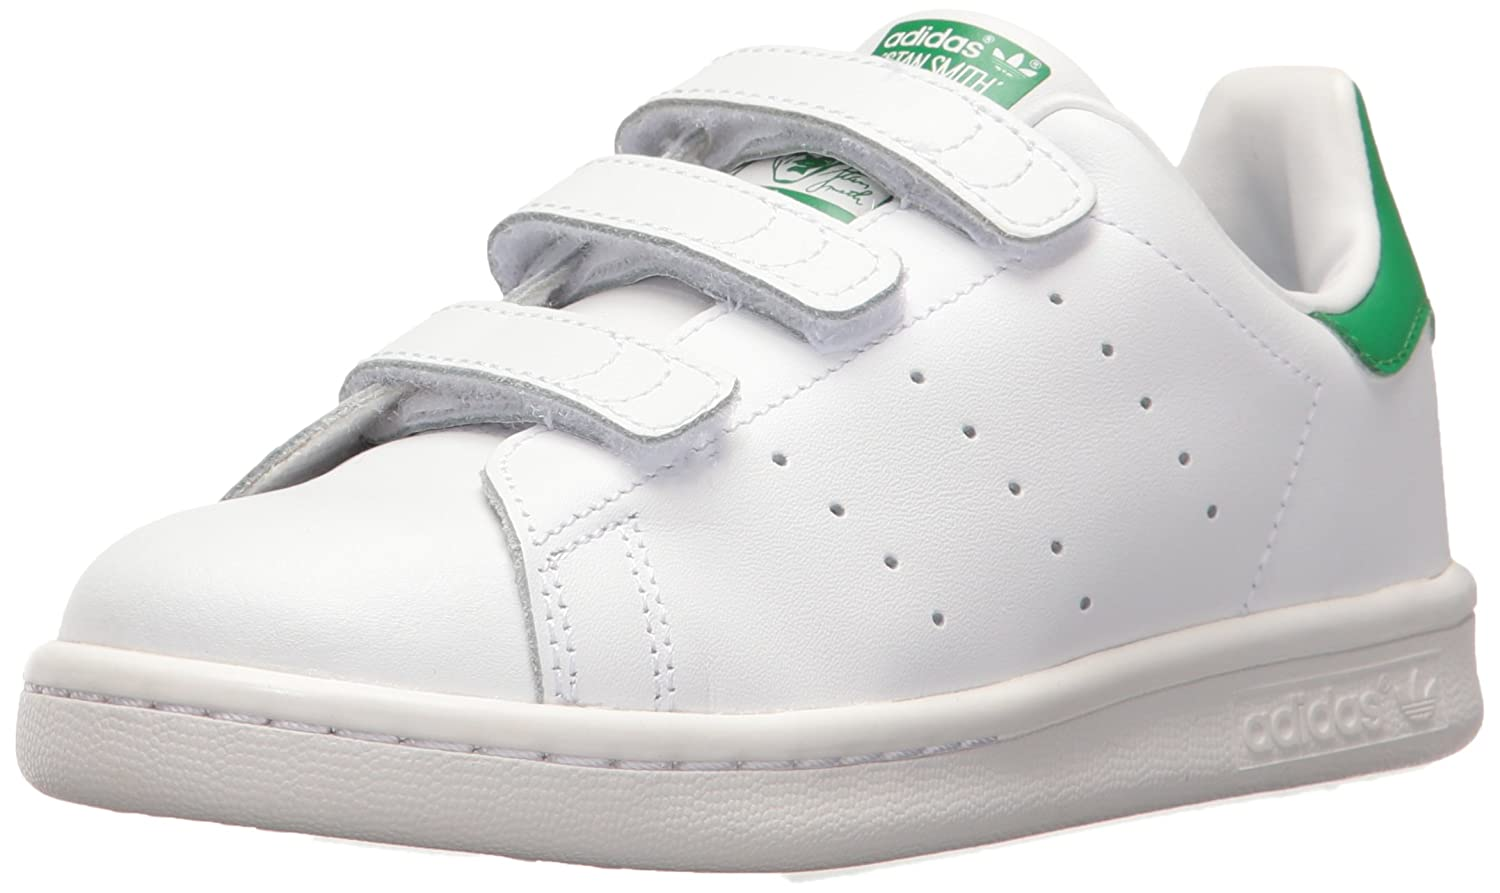 adidas Originals Adidas originals Stan Smith Velcro sneakers kids STAN SMITH CF C white white M20607